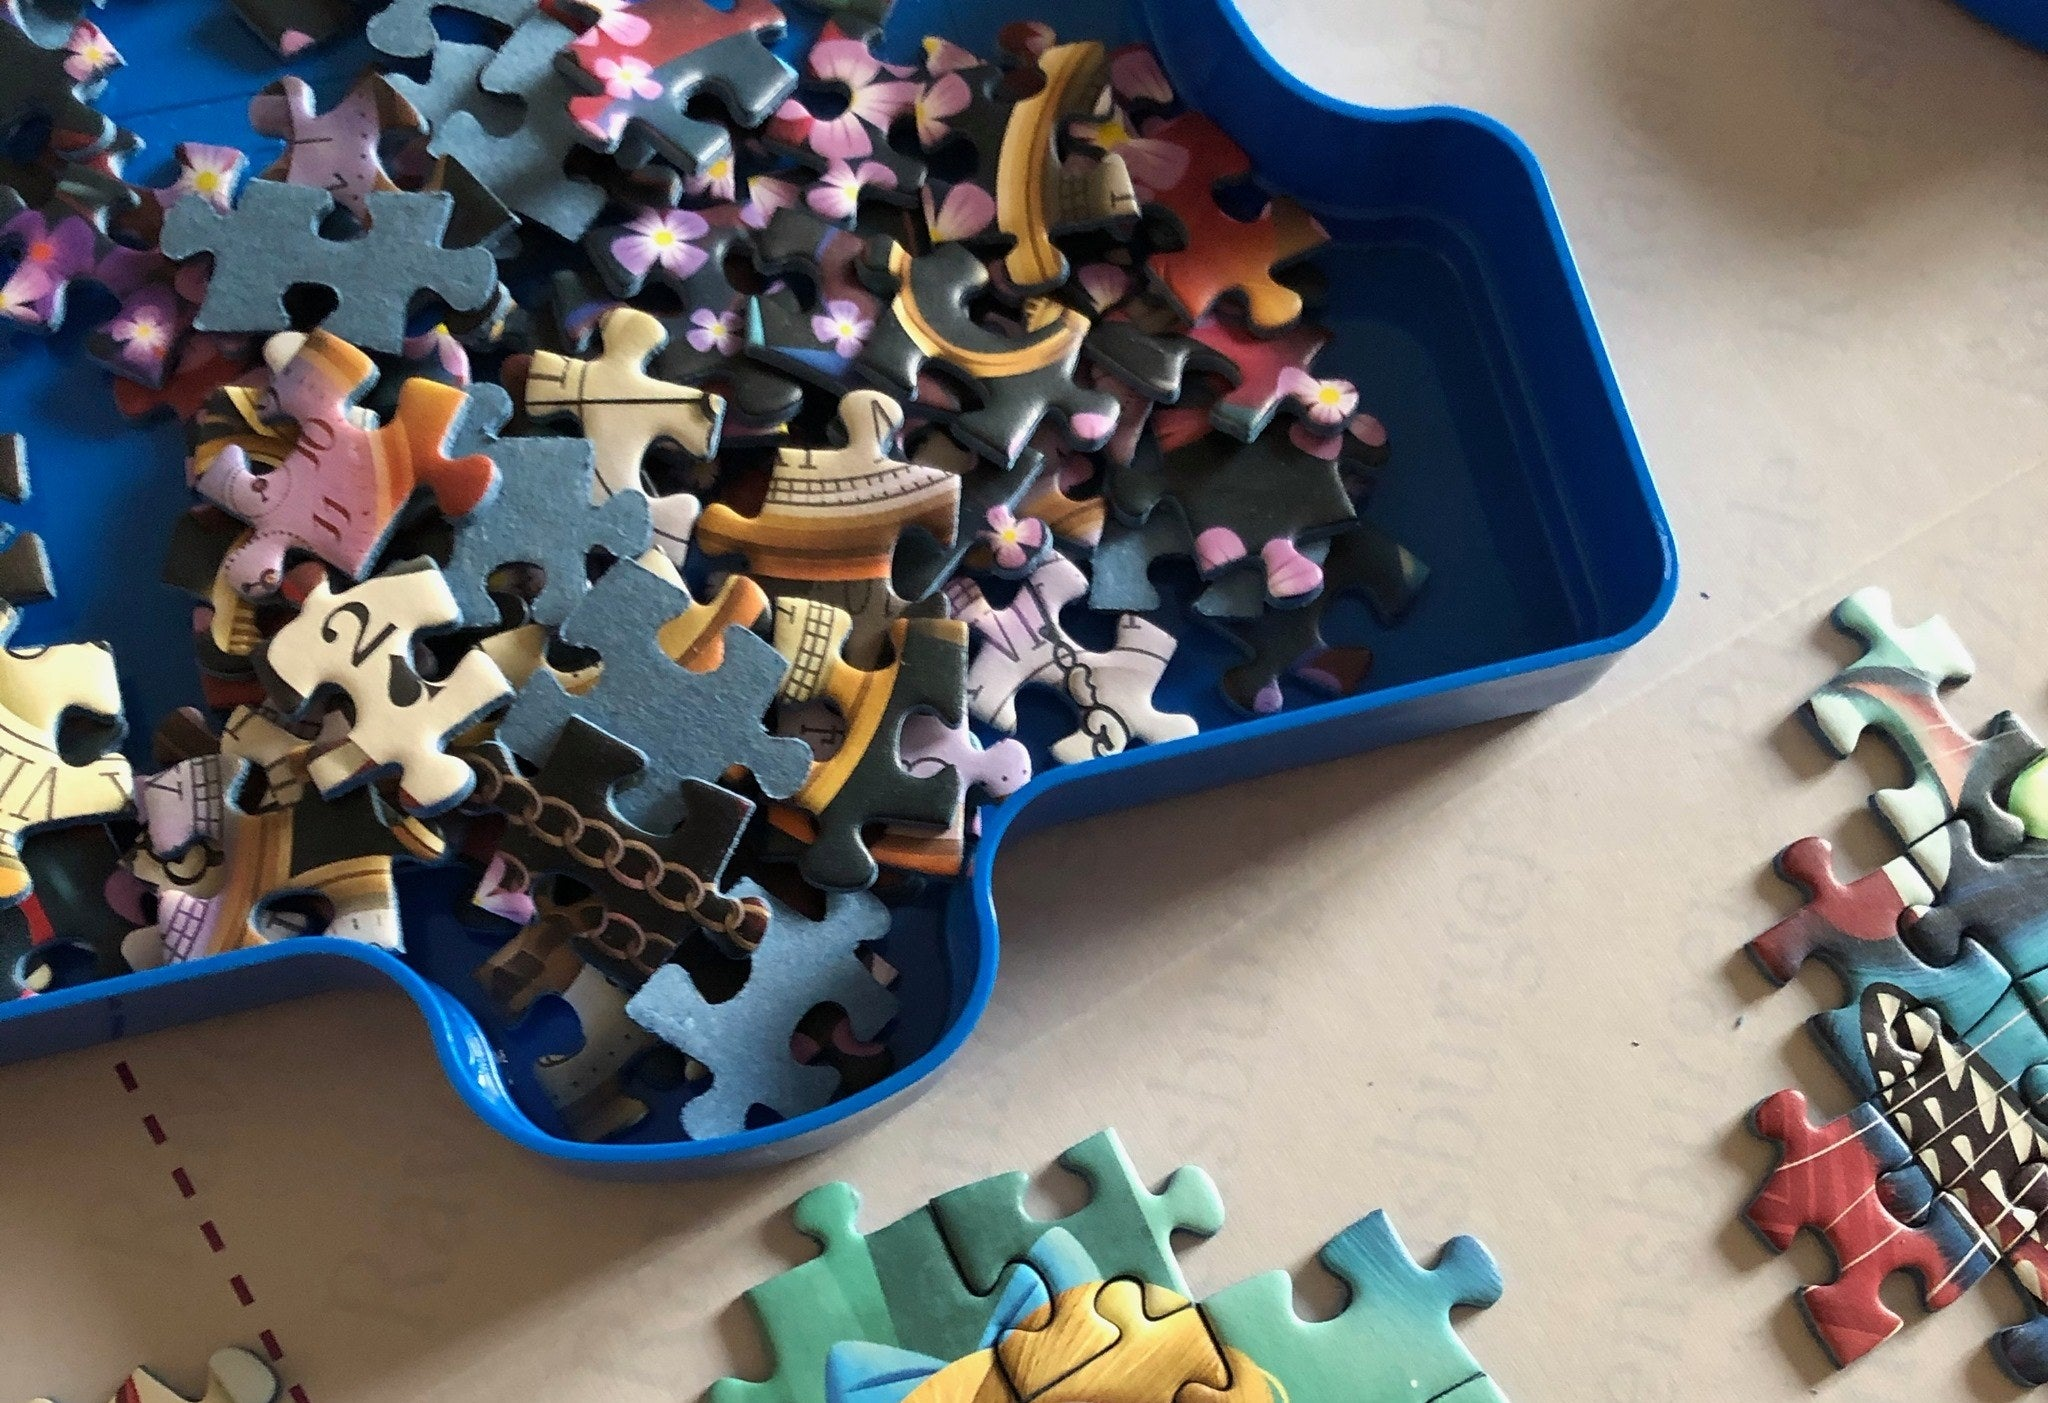 Person's puzzle being held in the sorting tray